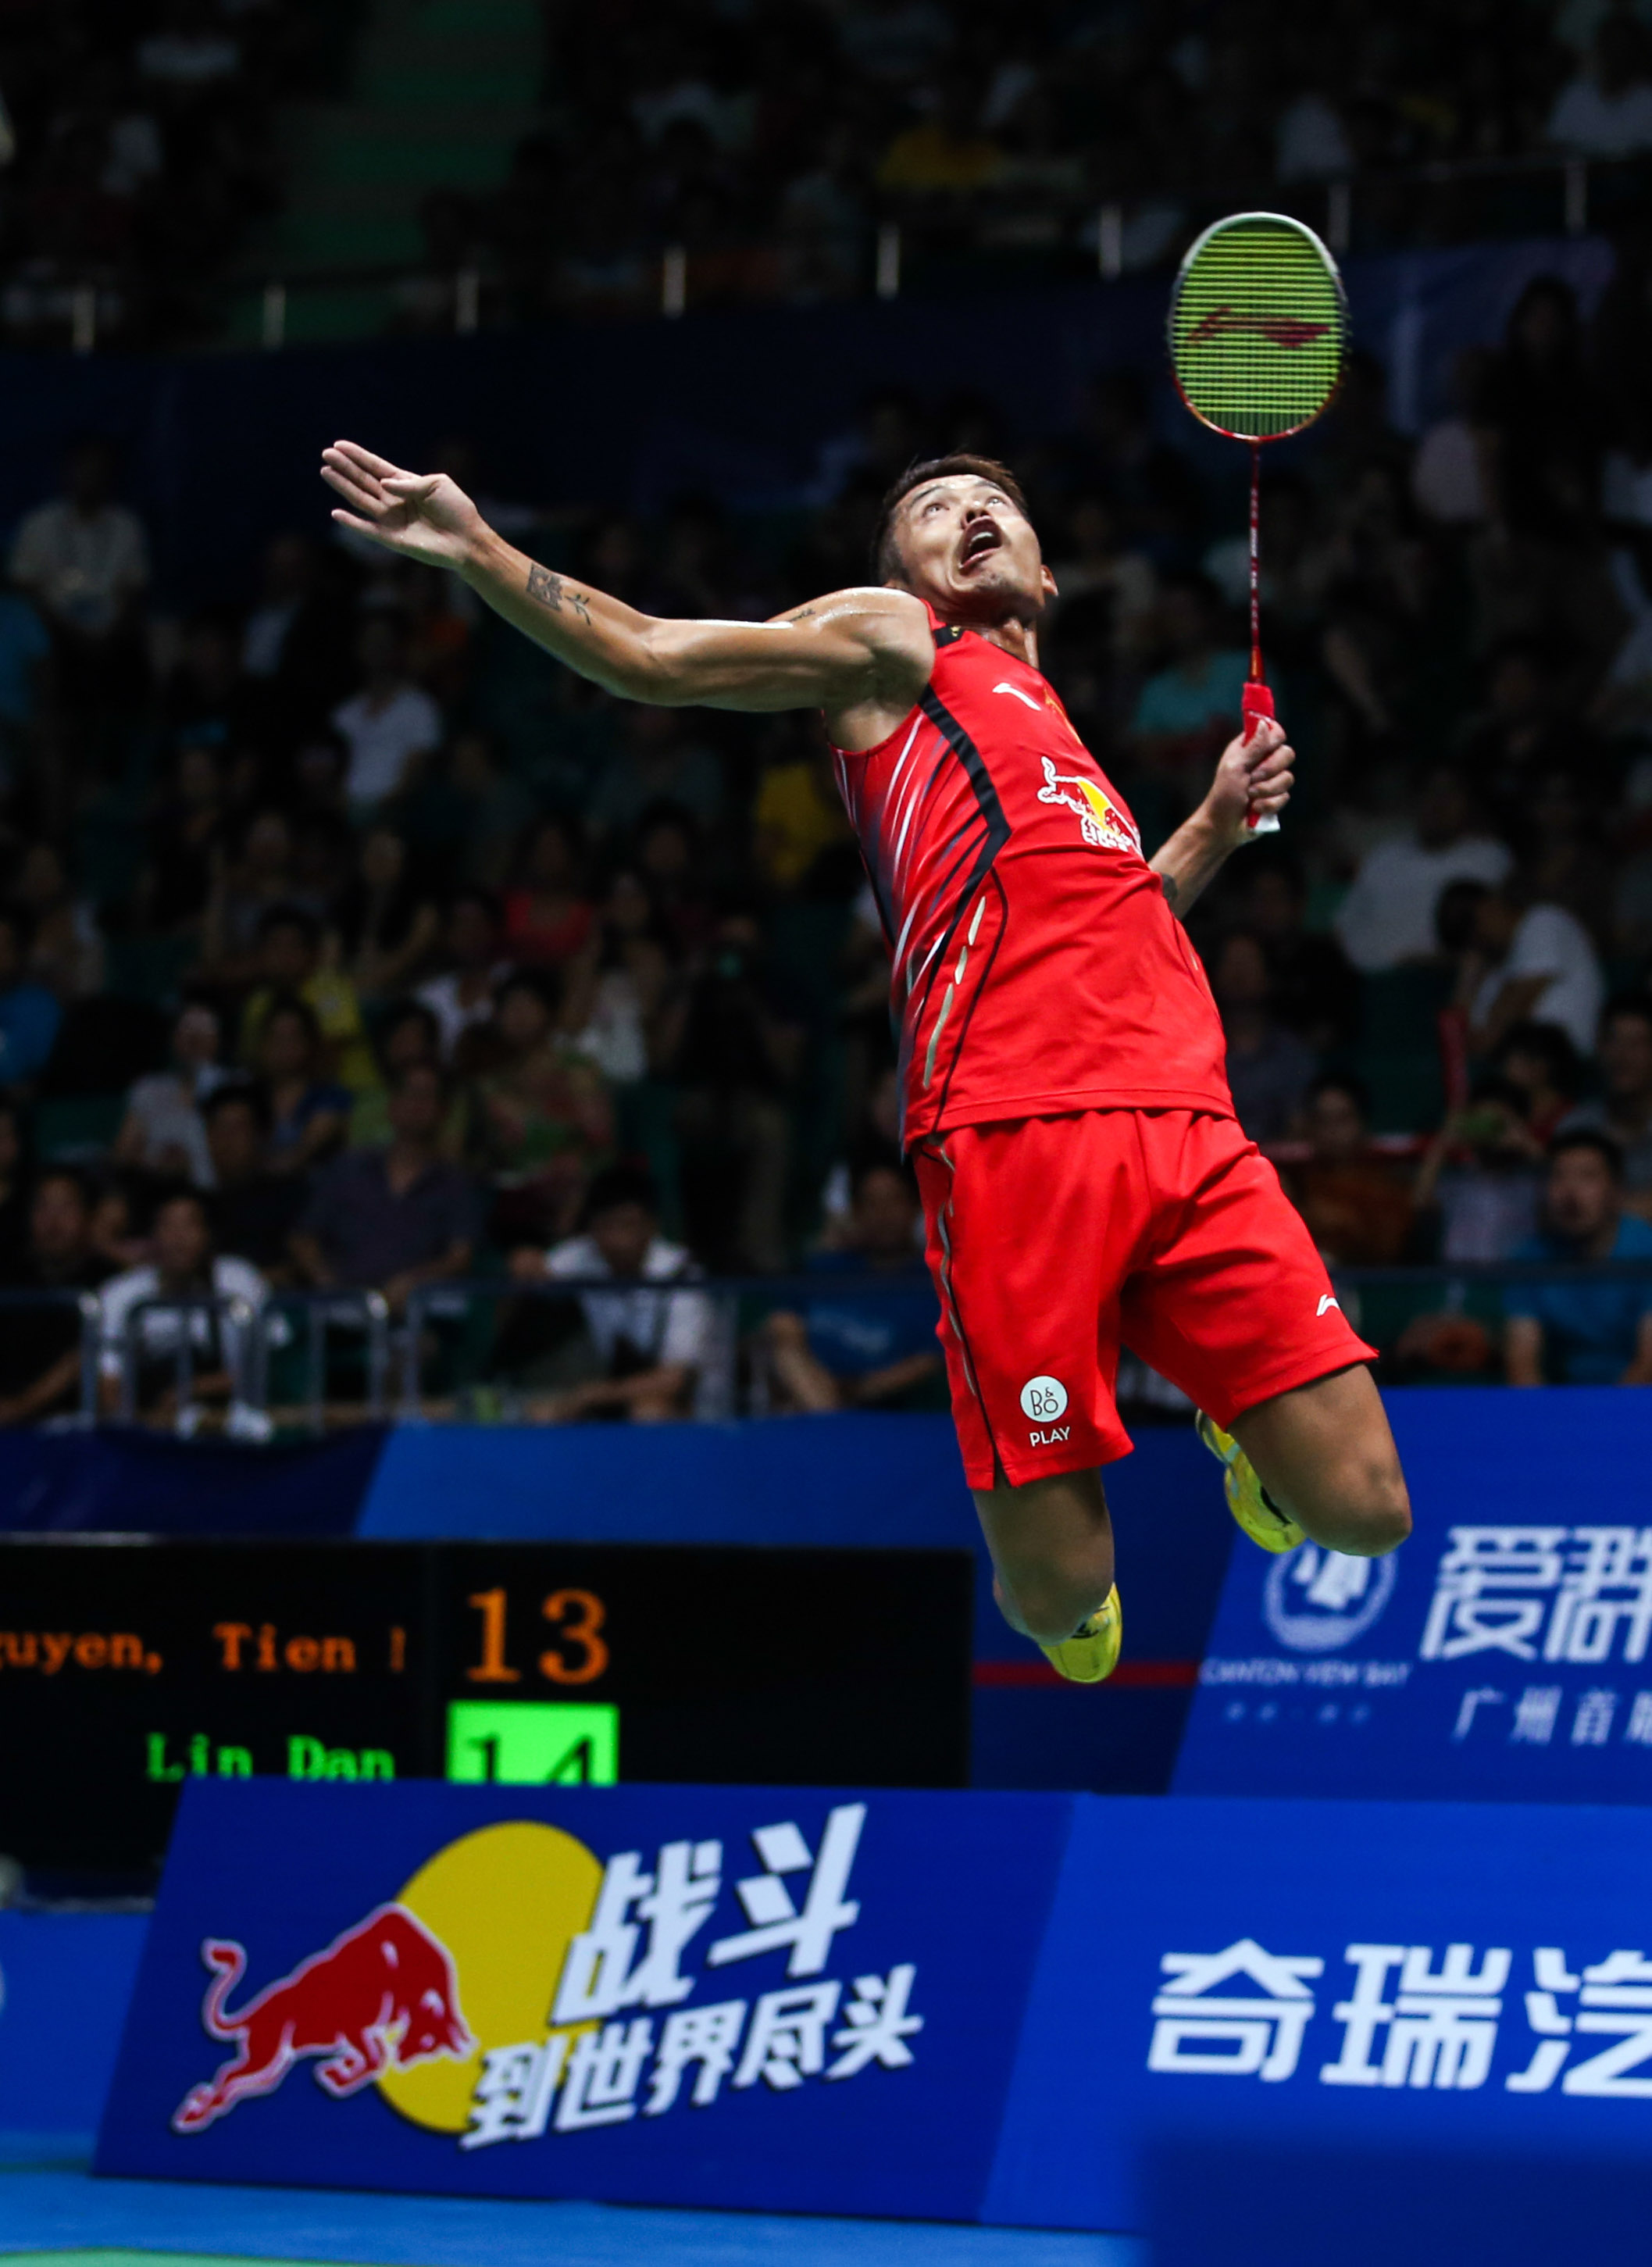 4 Keys That Will Help Improve Your Badminton Powerplay - Playo